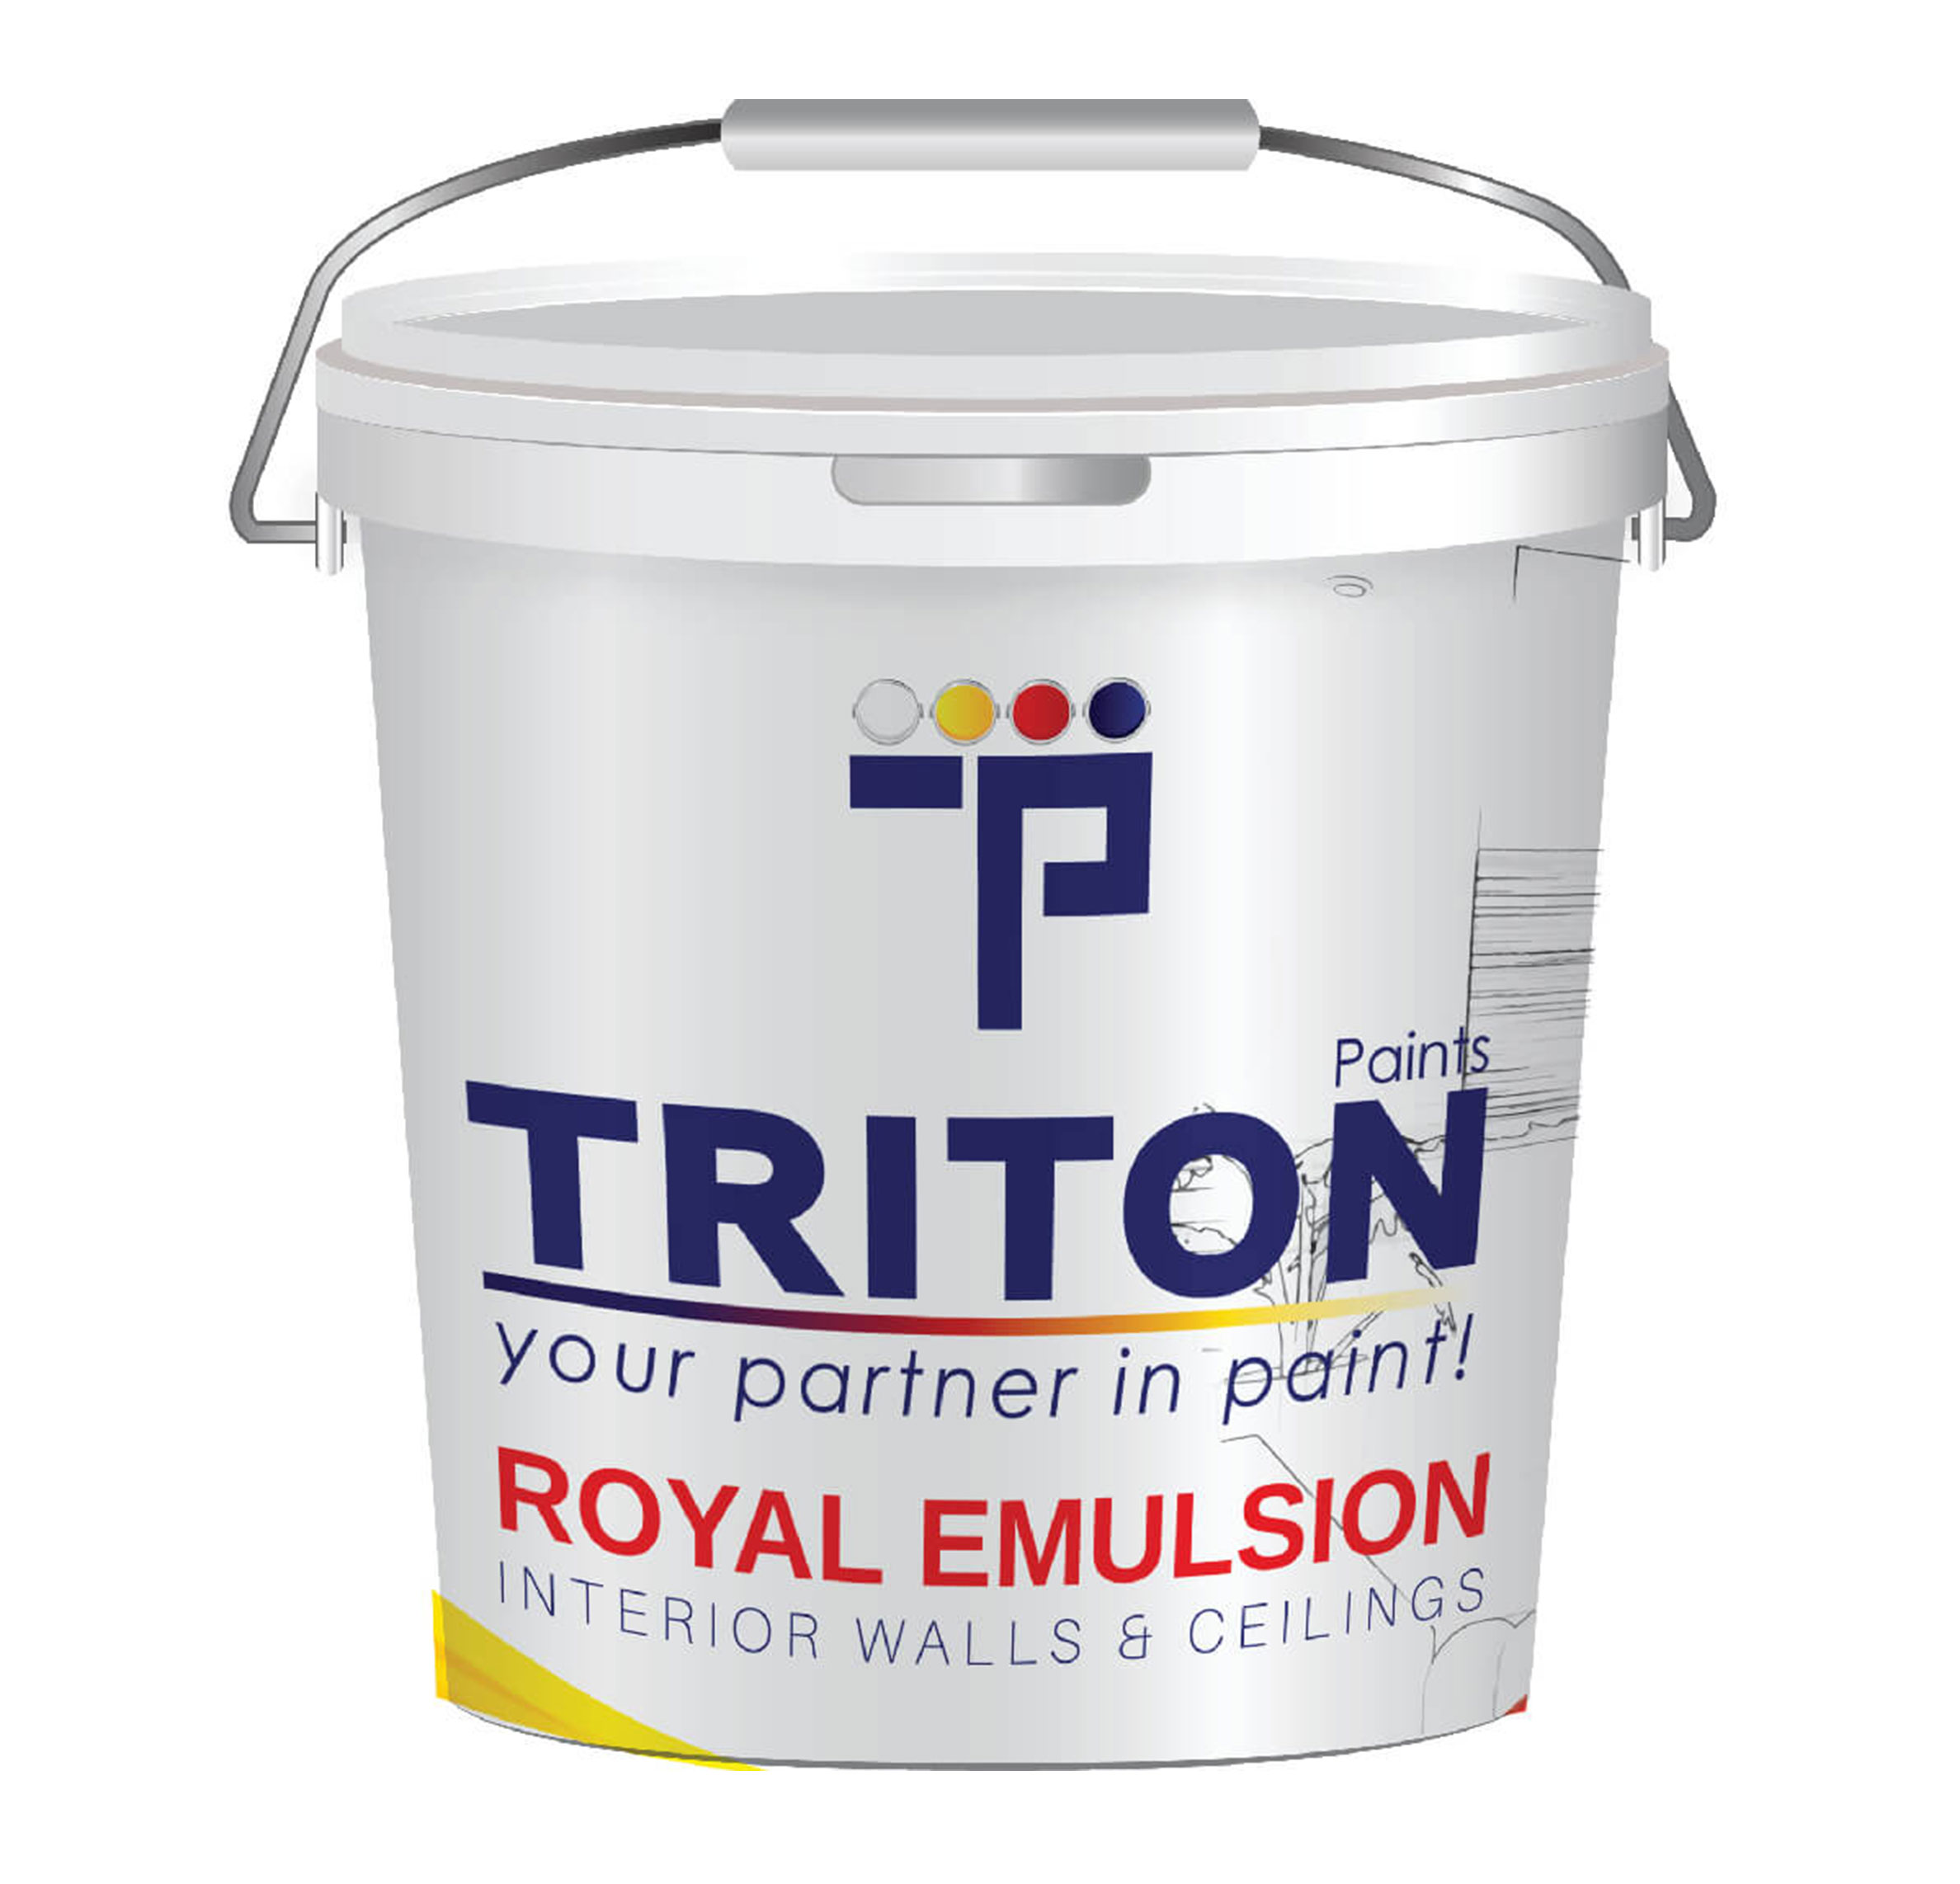 Royal Emulsion